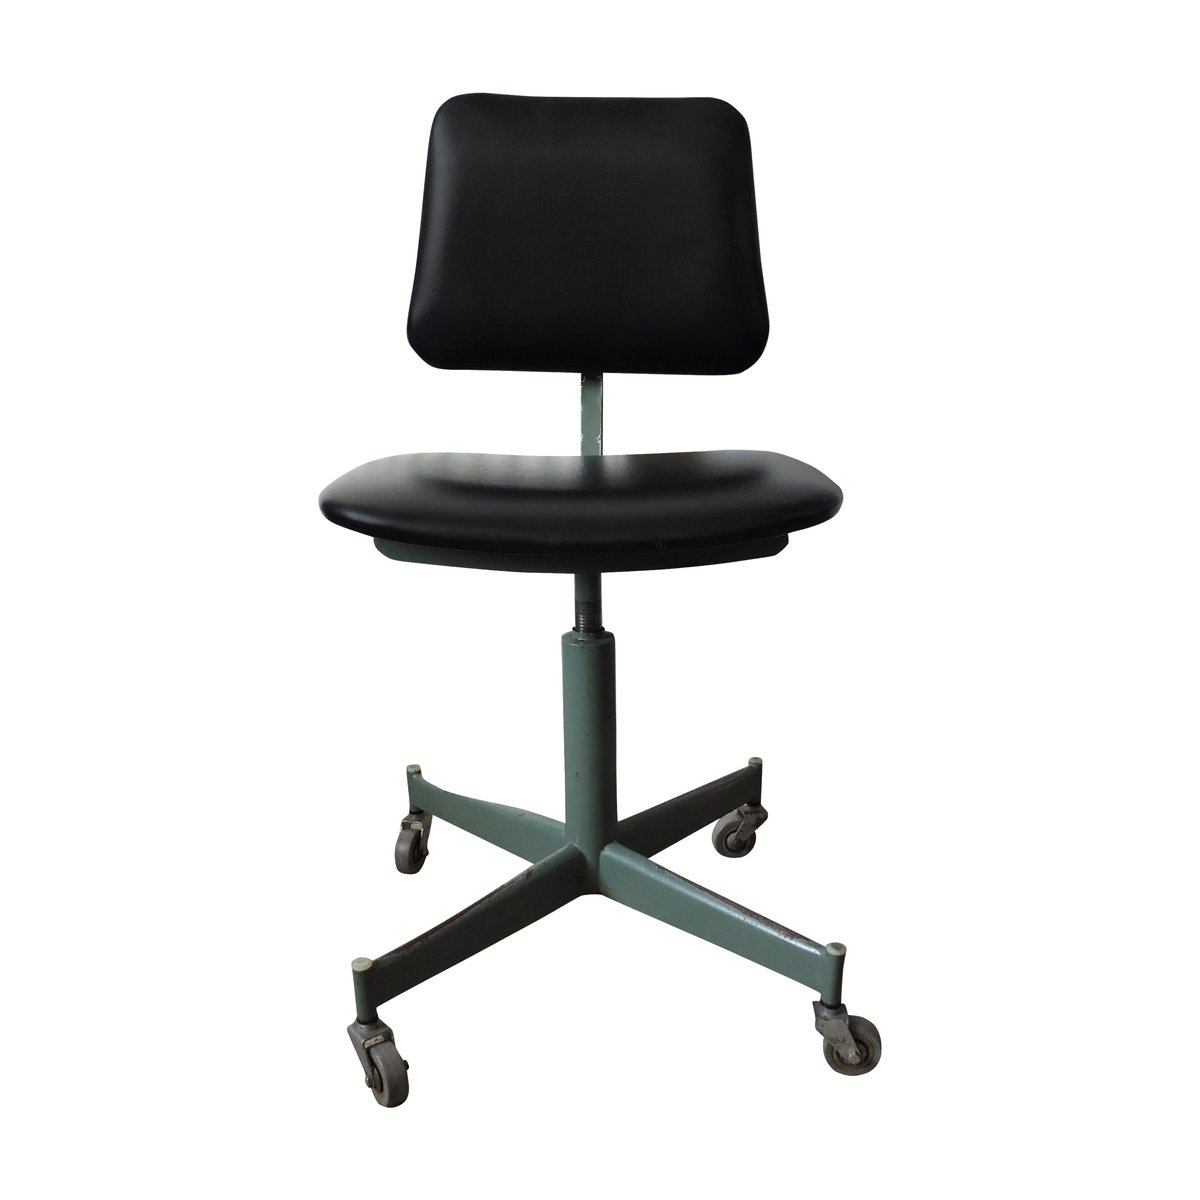 Industrial Office Chair Industrial Office Chair From Lusodex 1970s For Sale At Pamono